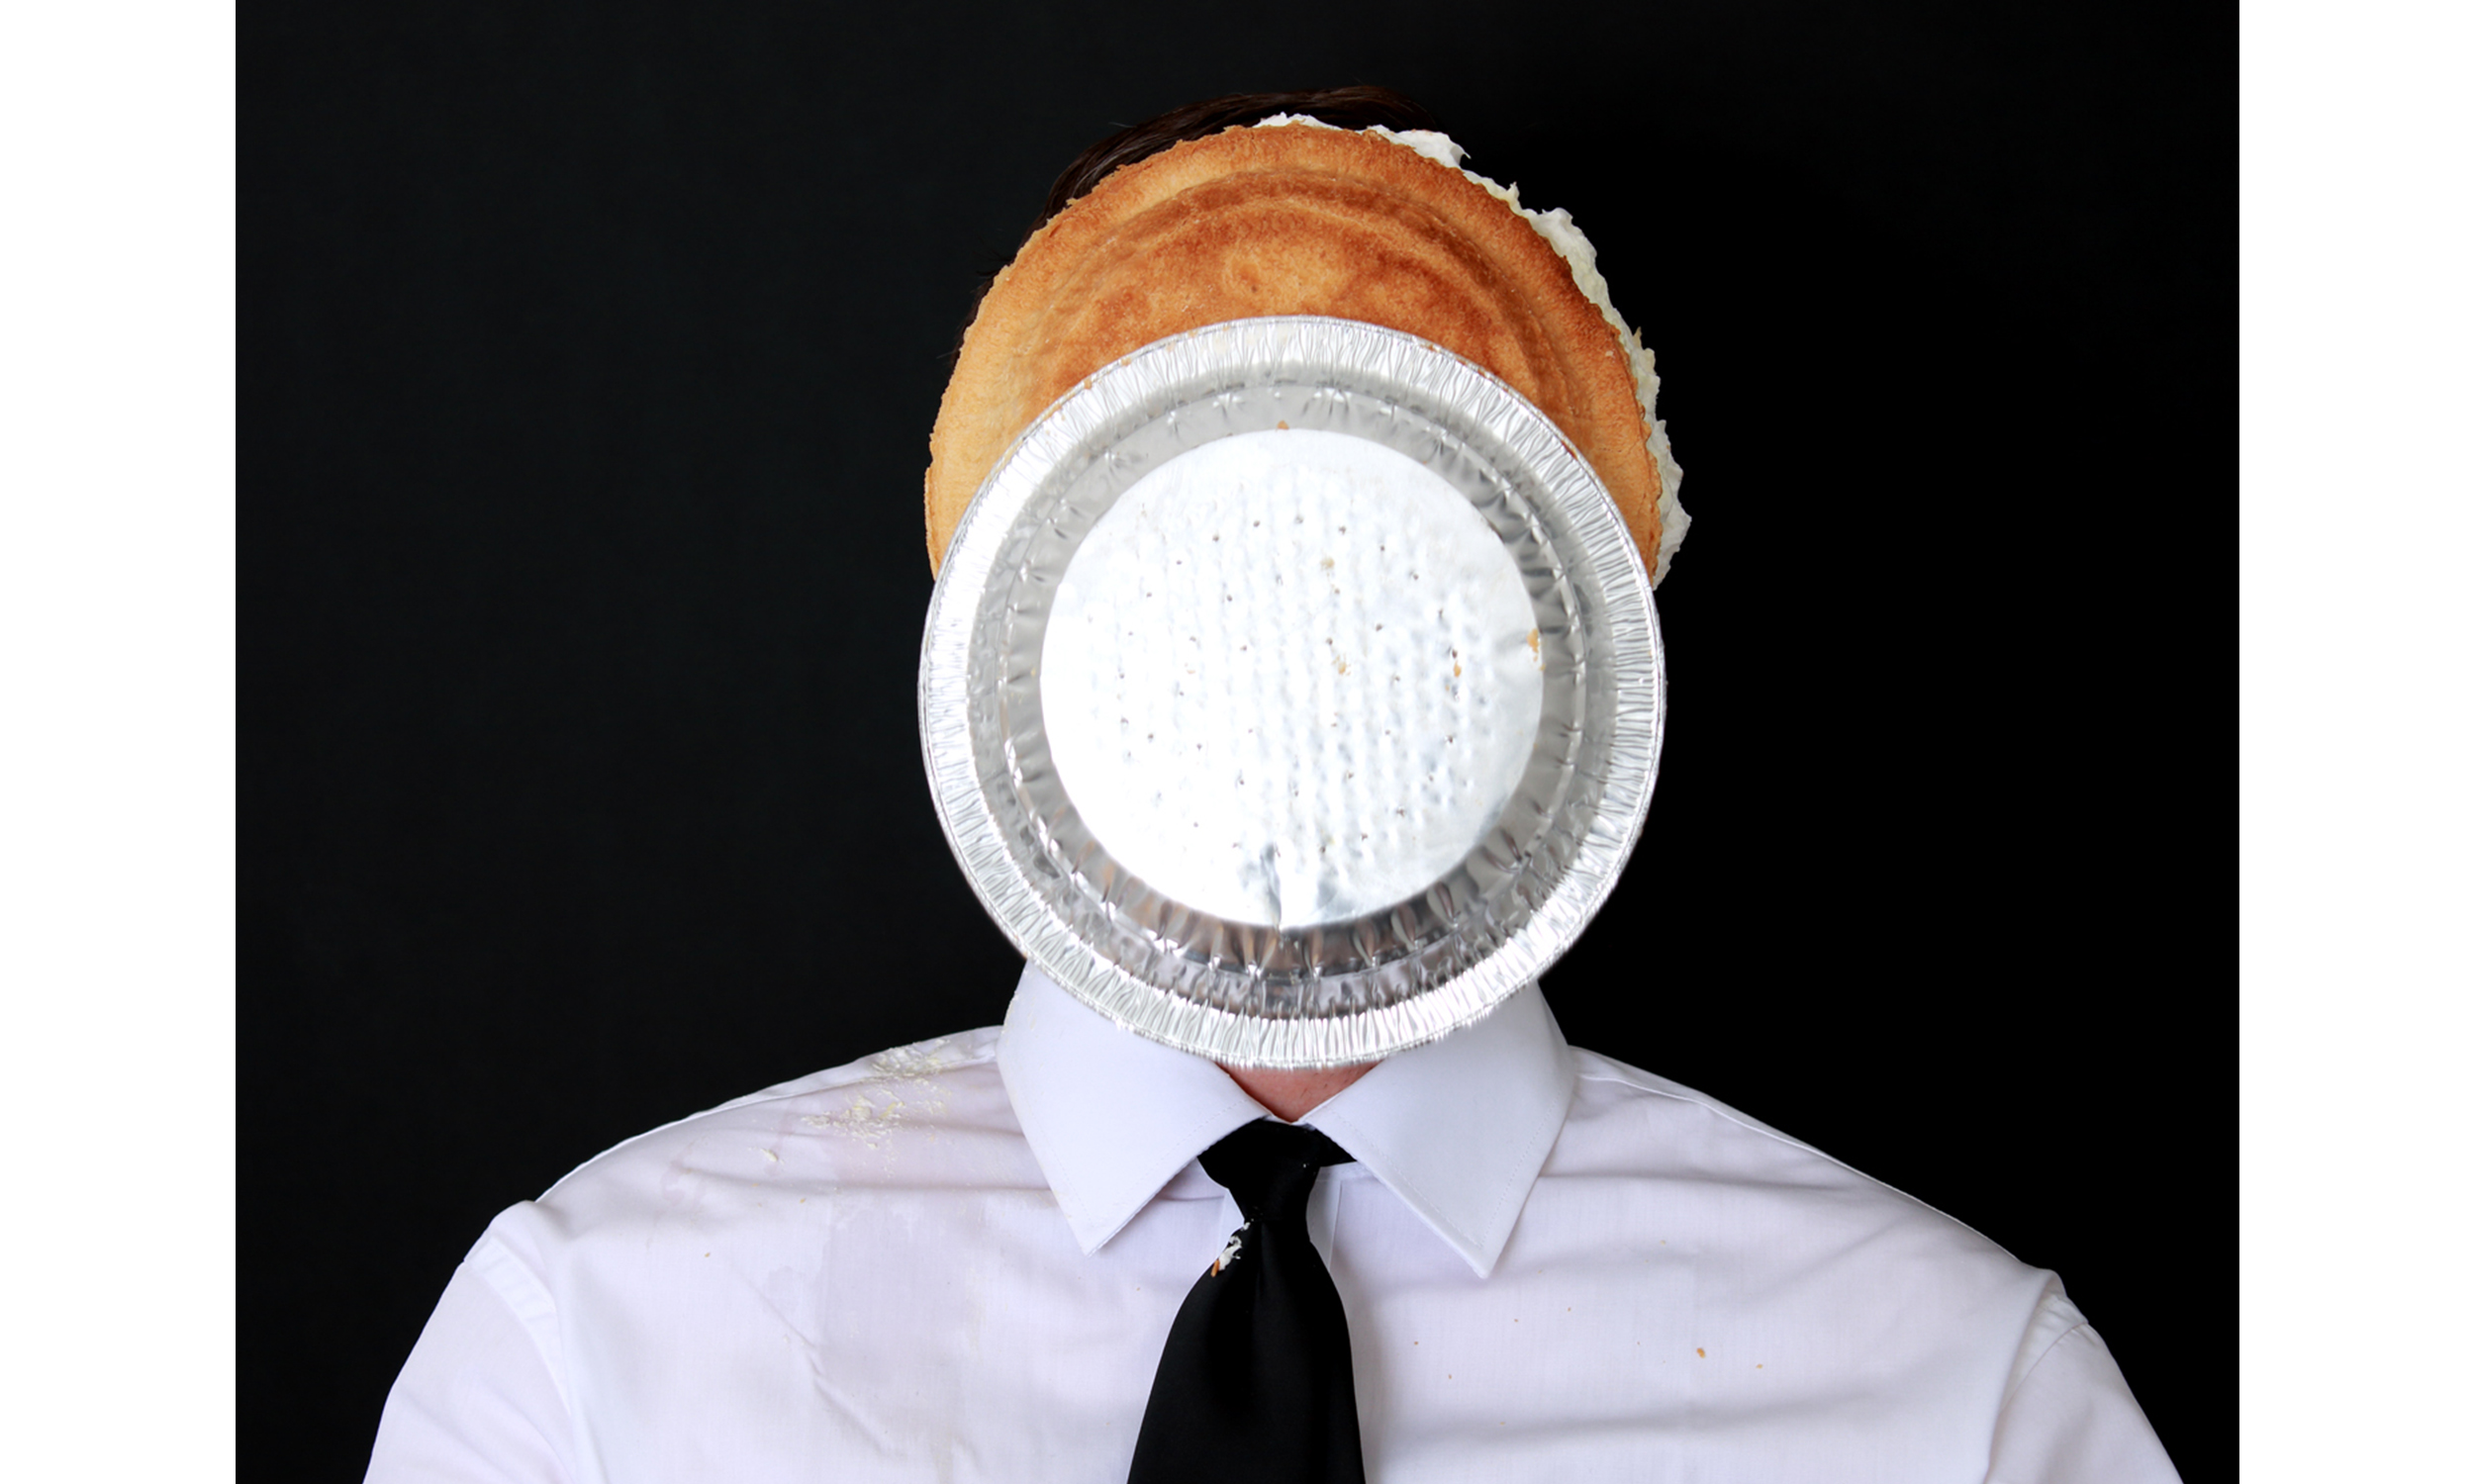 Untitled Self-Portrait with Banana Cream Pie 1  2016 Archival pigment print 36h x 48w in